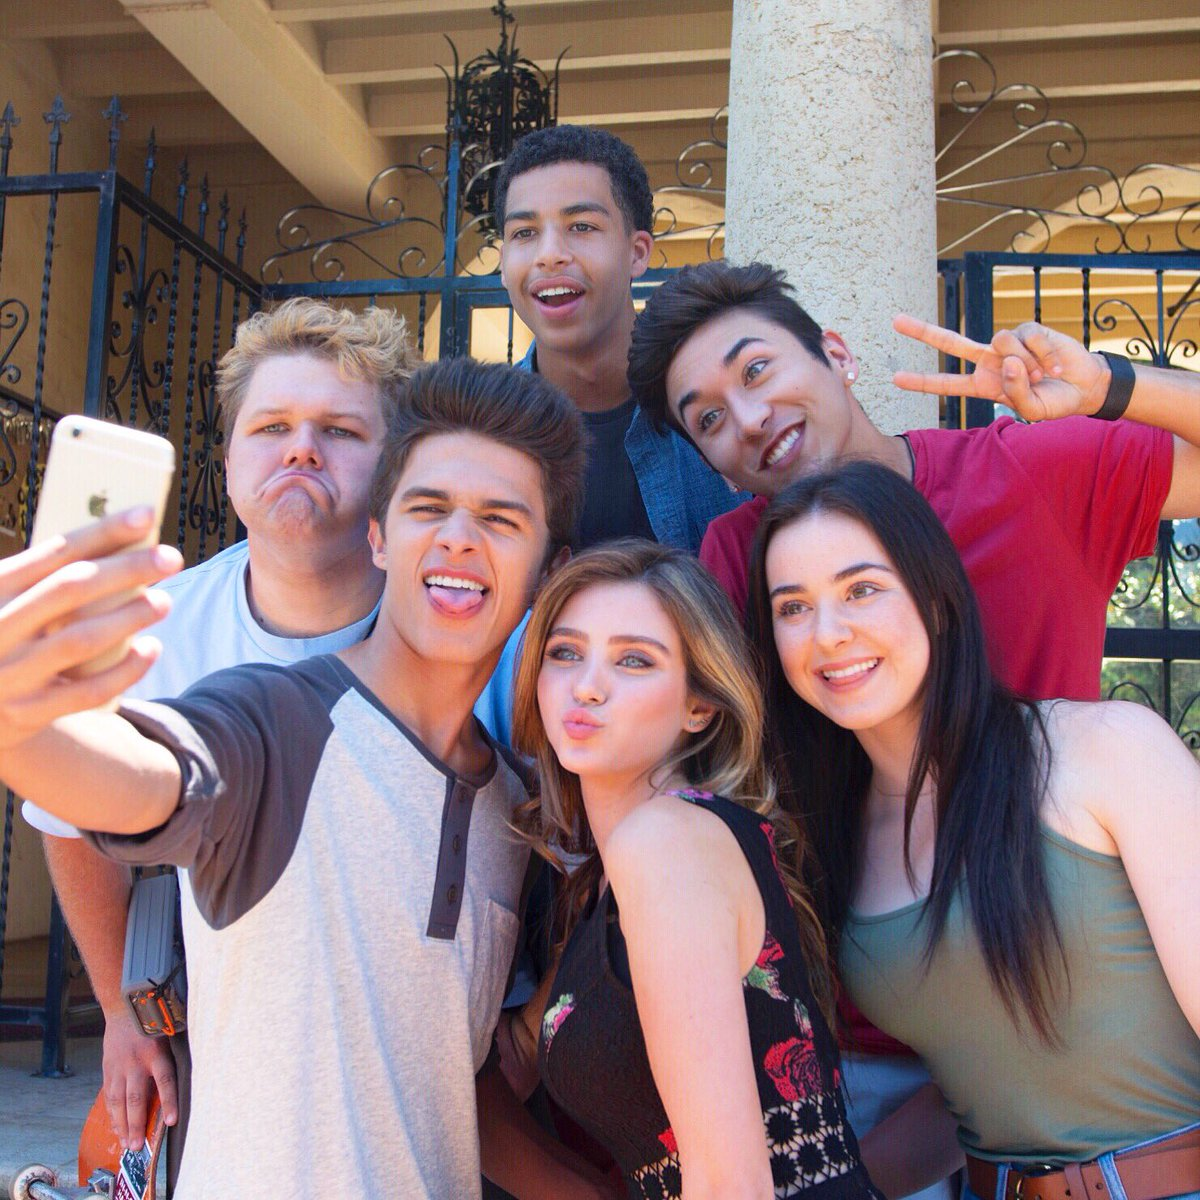 We just started filming our new movie #alexanderIRL Go to https://t.co/DWdM3WmzAb for the inside scoop! @BrentRivera https://t.co/8Sx16f7Y9h